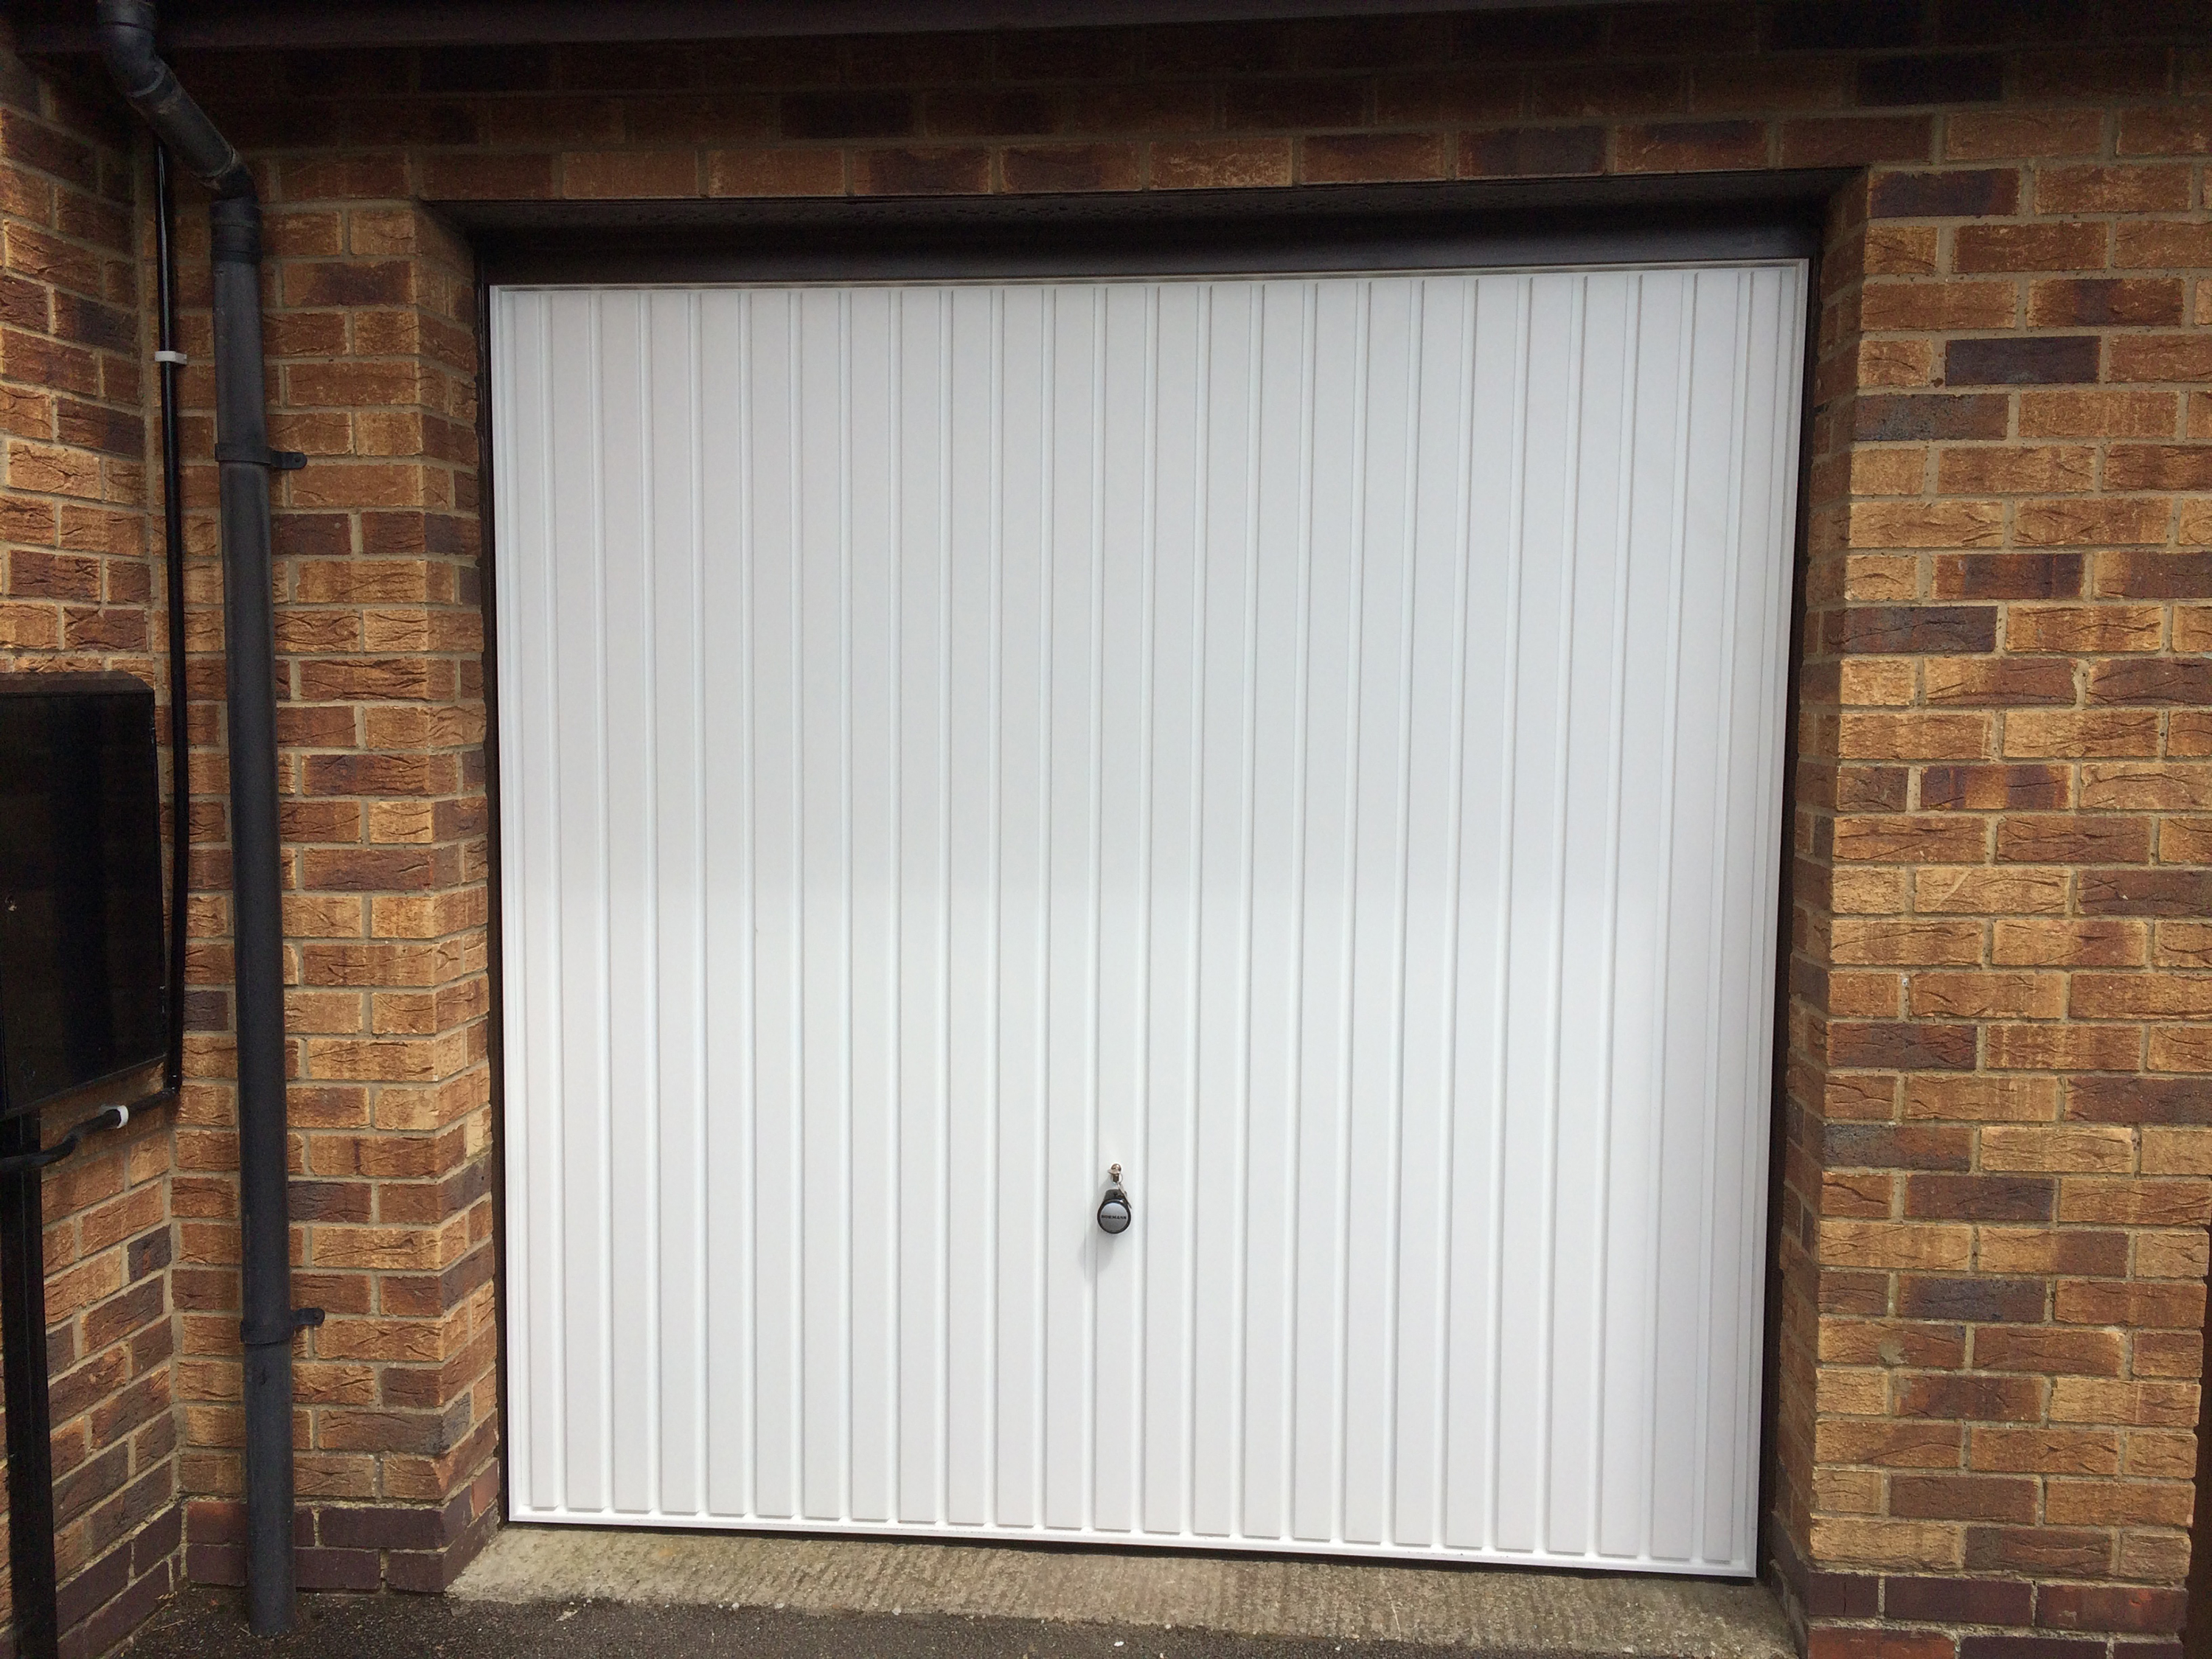 Hormann garage doors sectional garage doors online uk to the structural opening using the set of steel brackets supplied three down each side of the frame one at the head on larger sized doors 13ft rubansaba